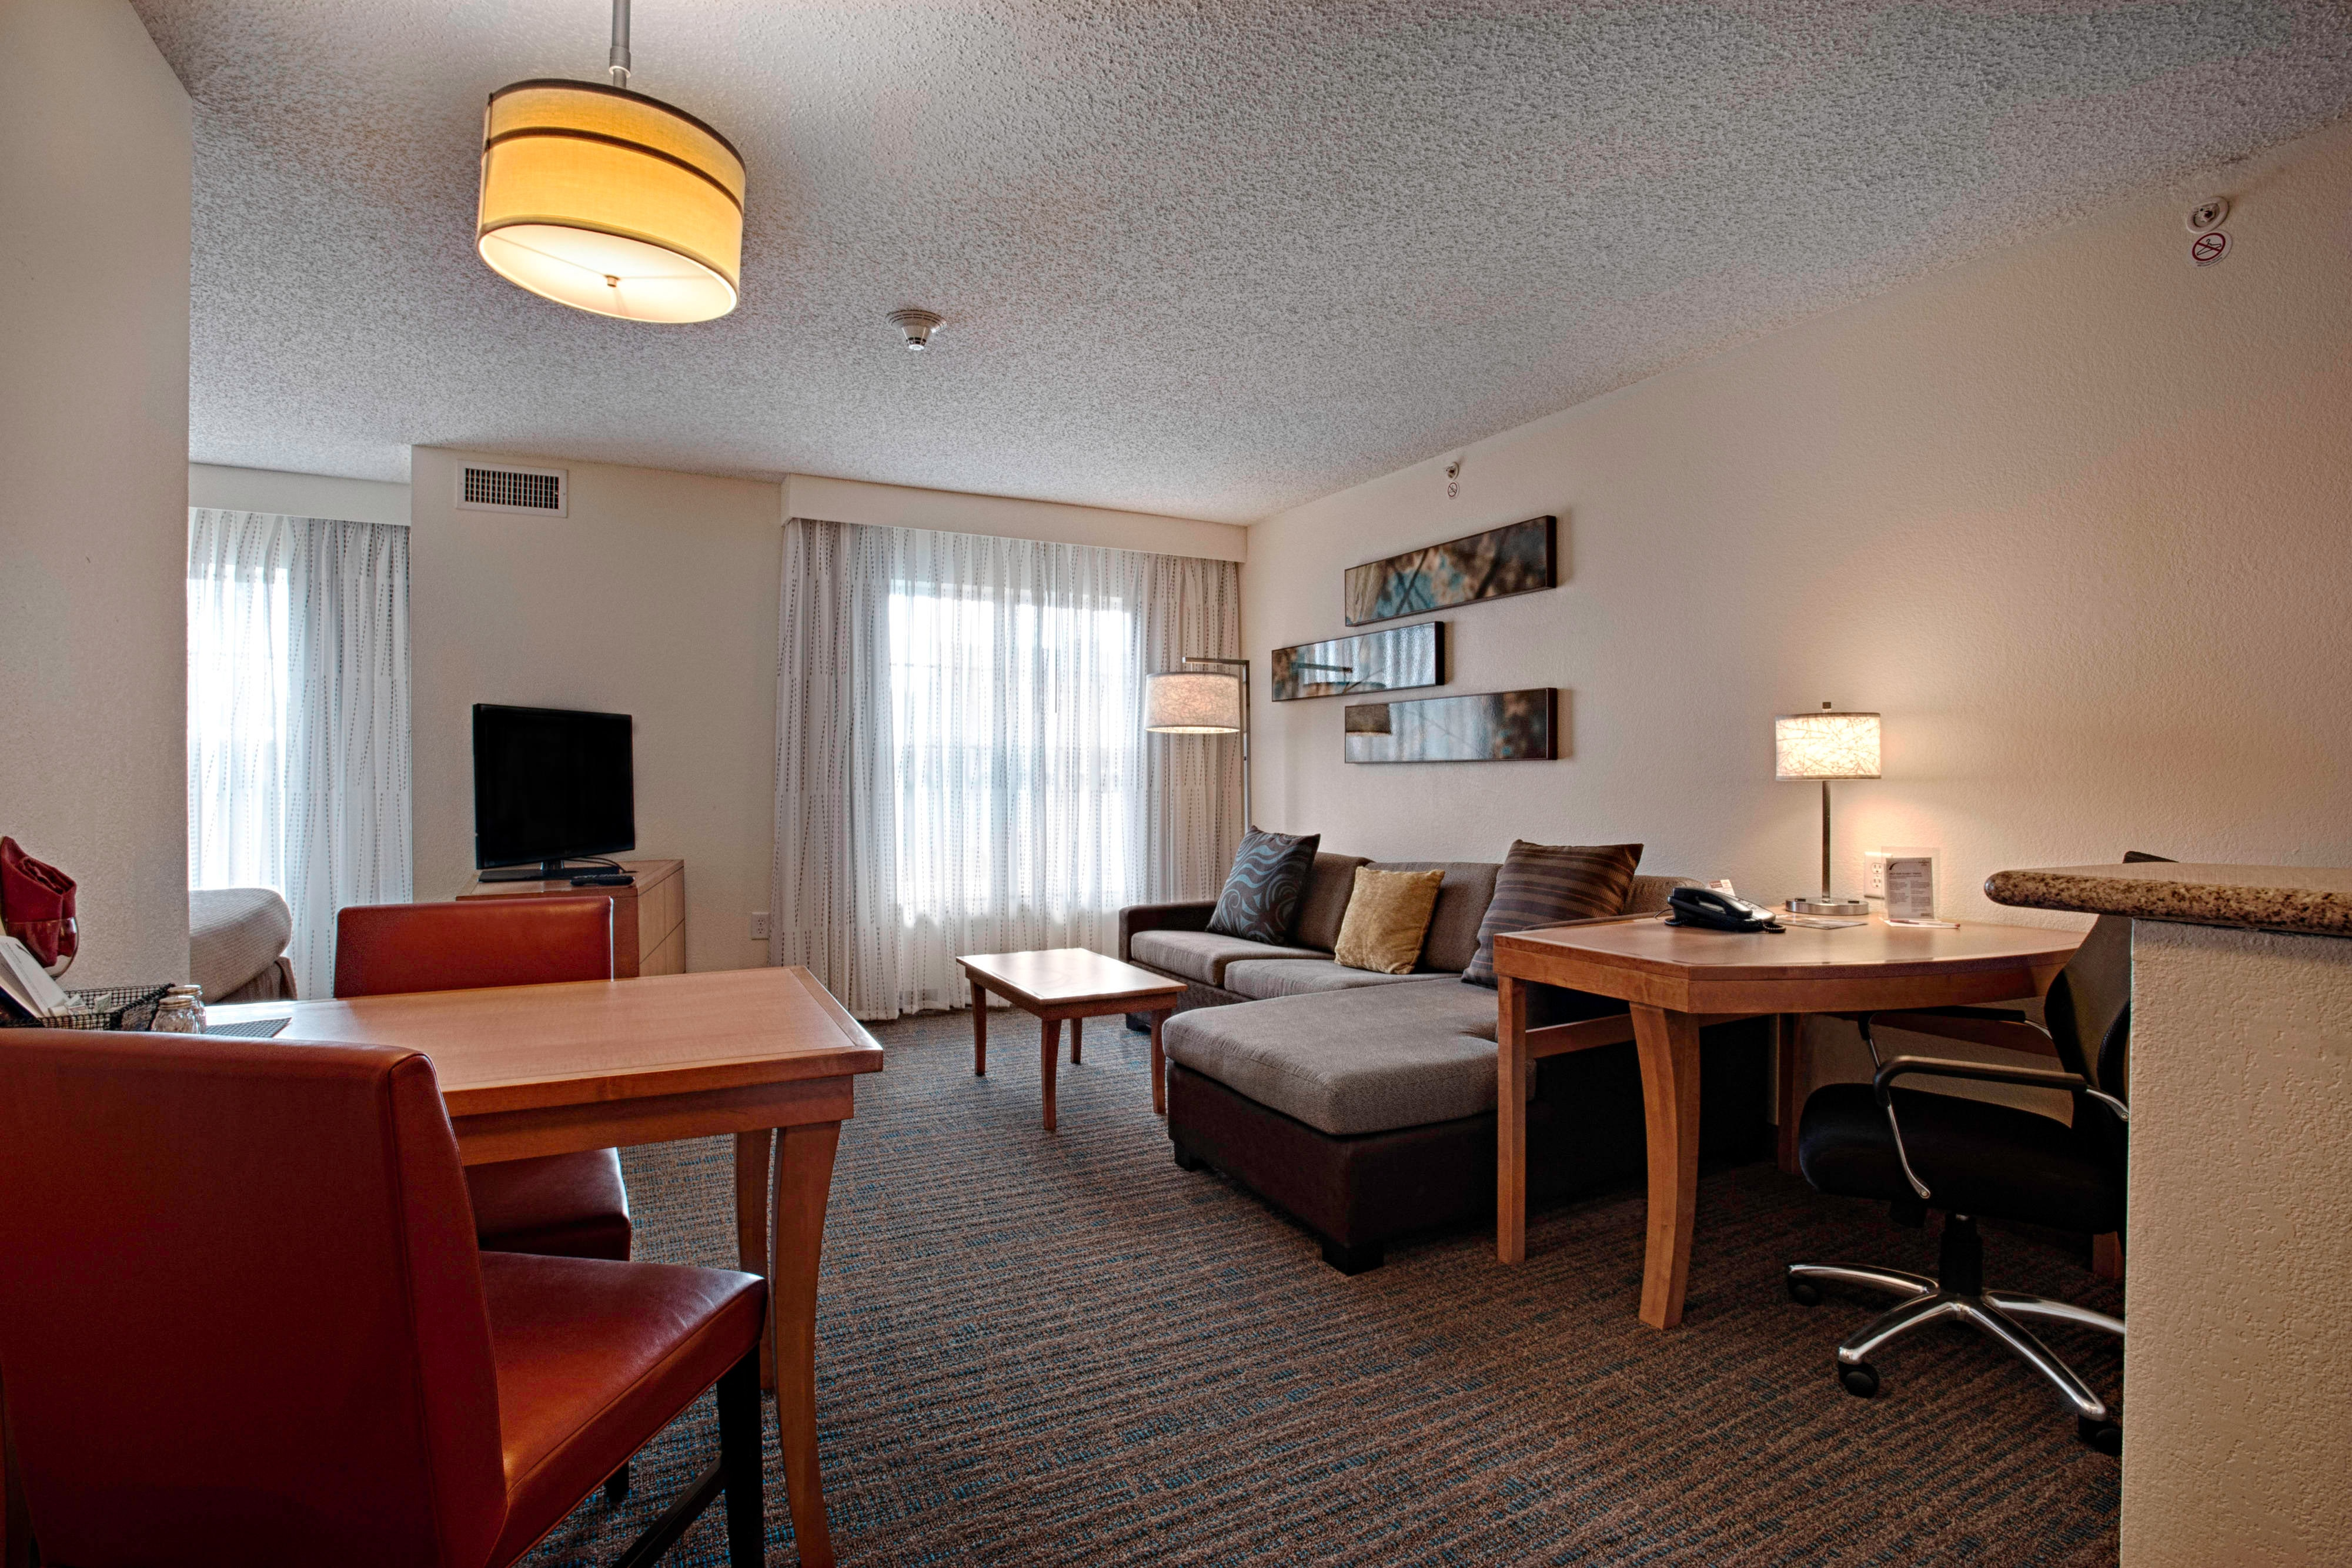 Atlantic City Suites Hotels In Egg Harbor Township Nj Residence Inn